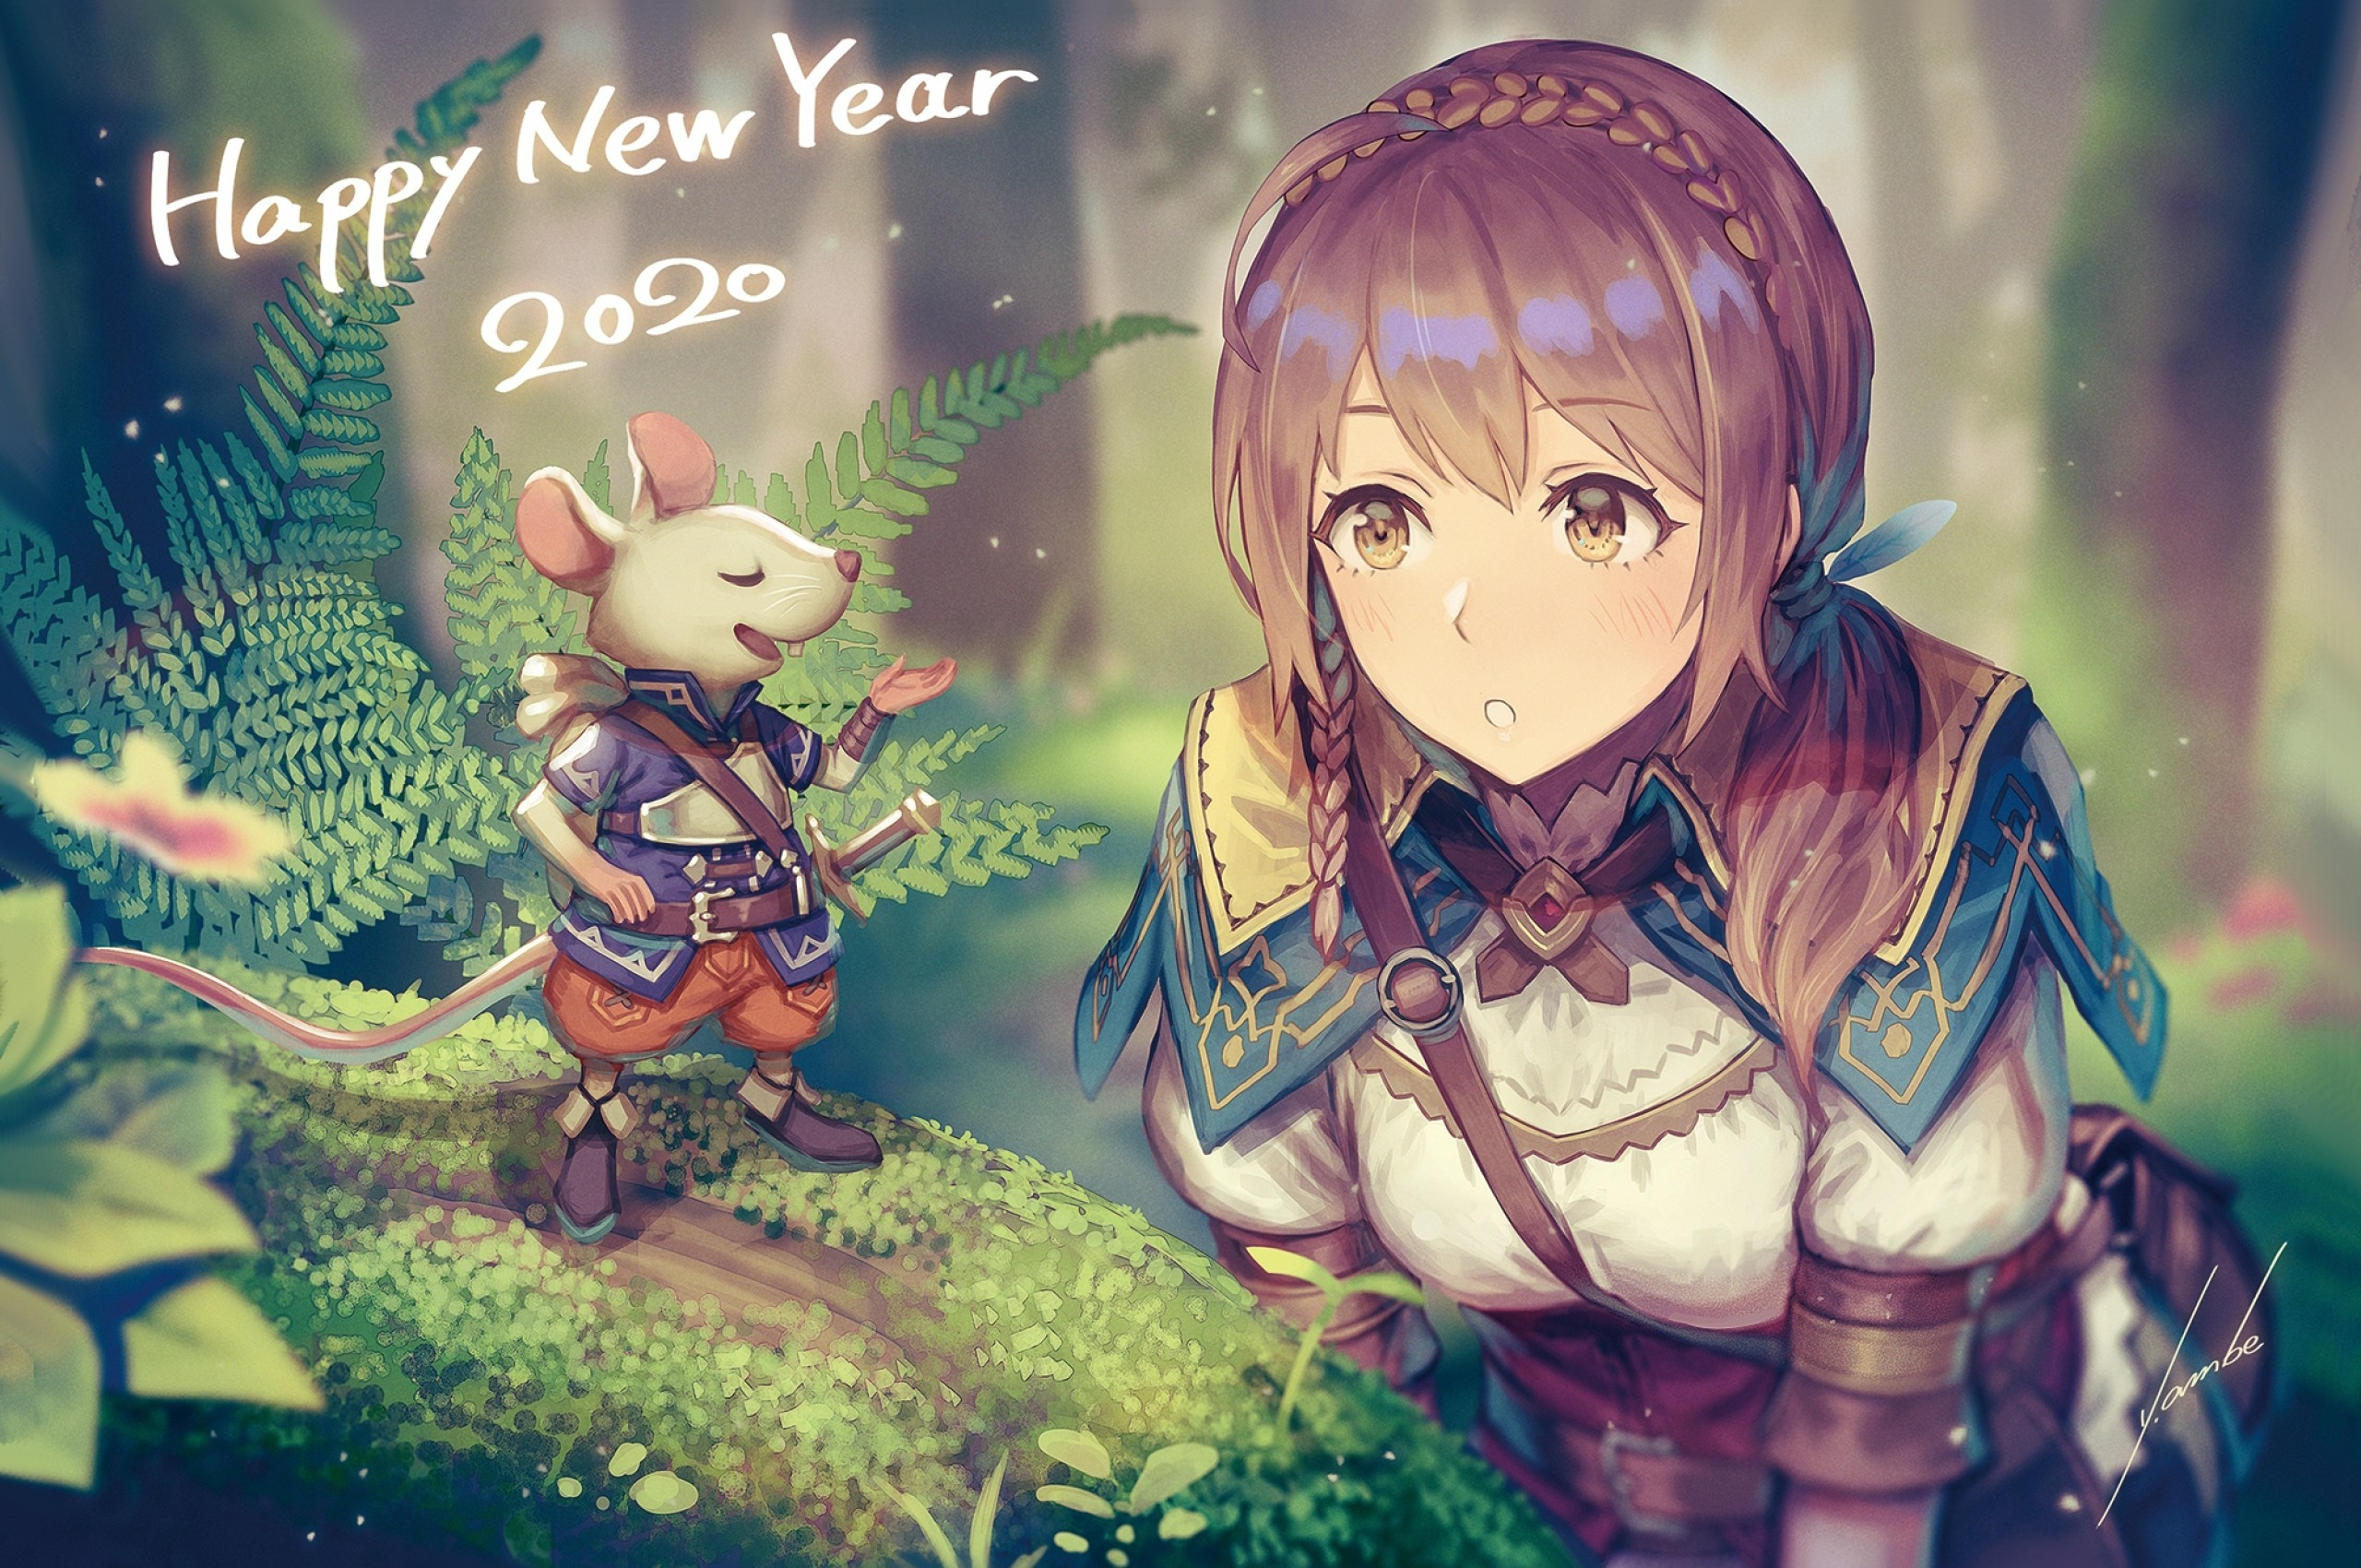 Download 2560x1700 Anime Girl Adventurer Forest Light Armor 2560x1700